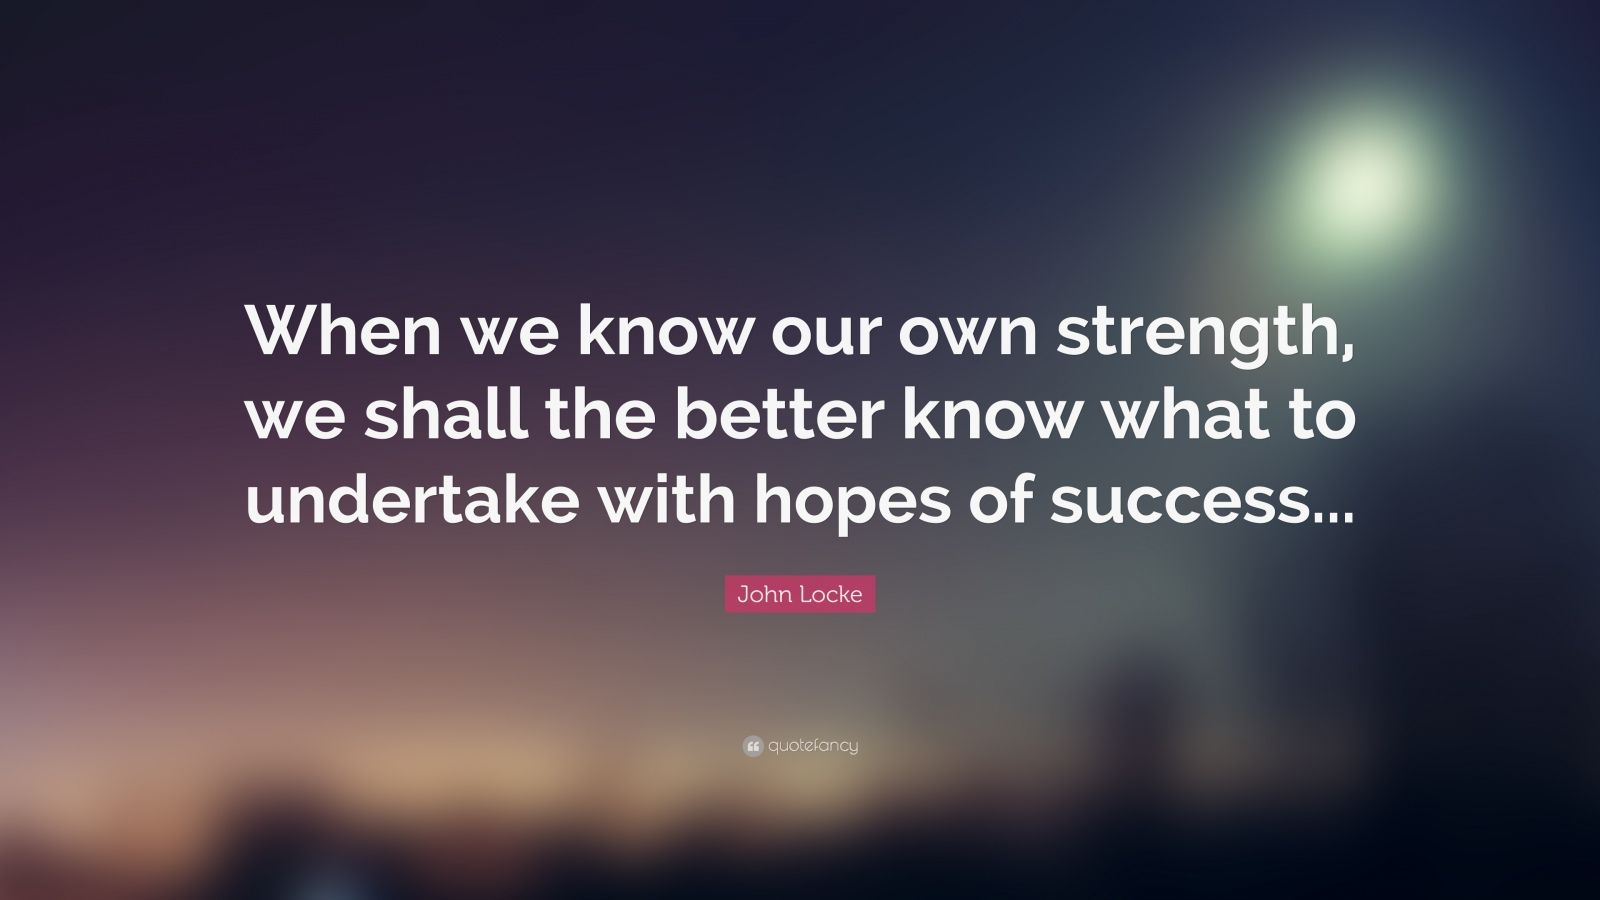 """John Locke Quote: """"When we know our own strength, we shall the better know what to undertake with hopes of success..."""""""